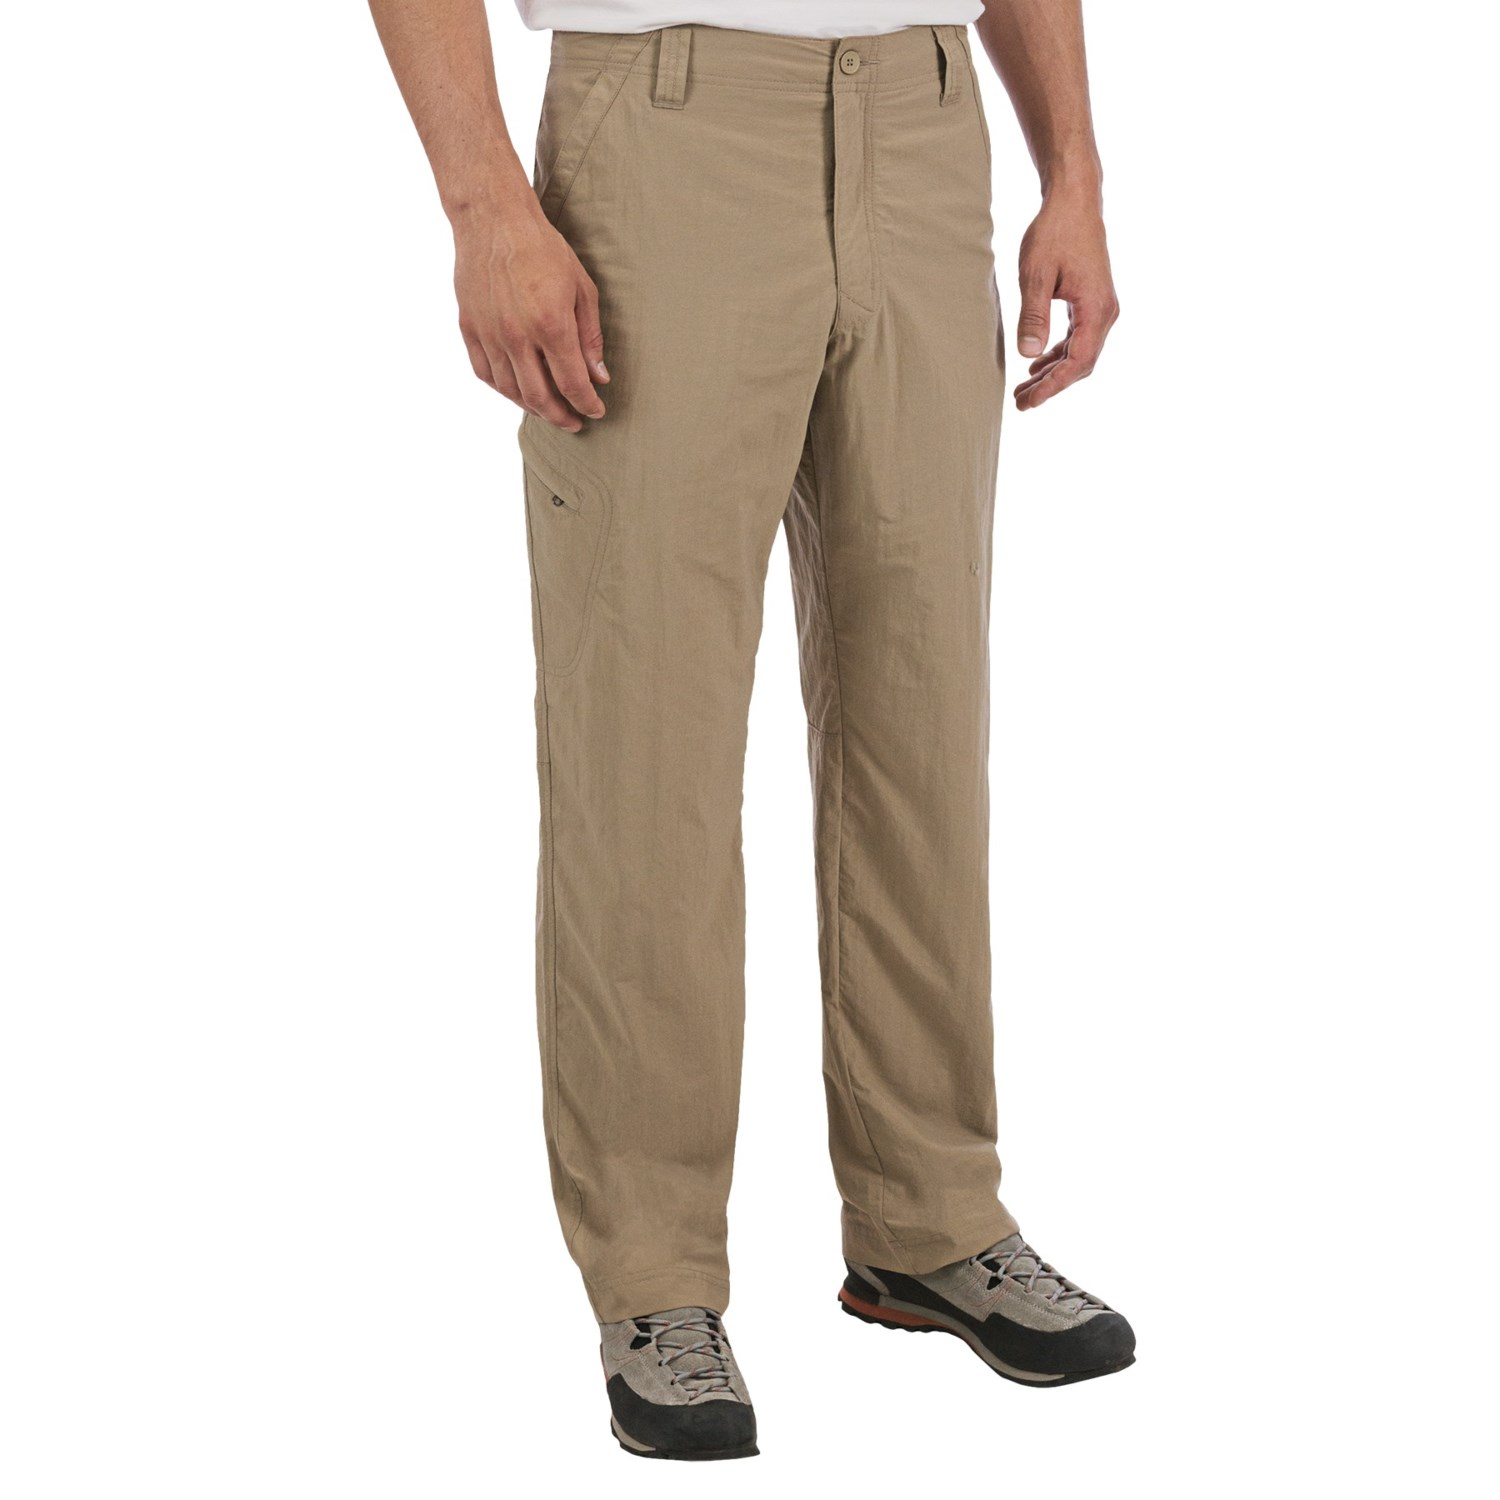 Mens Nylon Pants 108